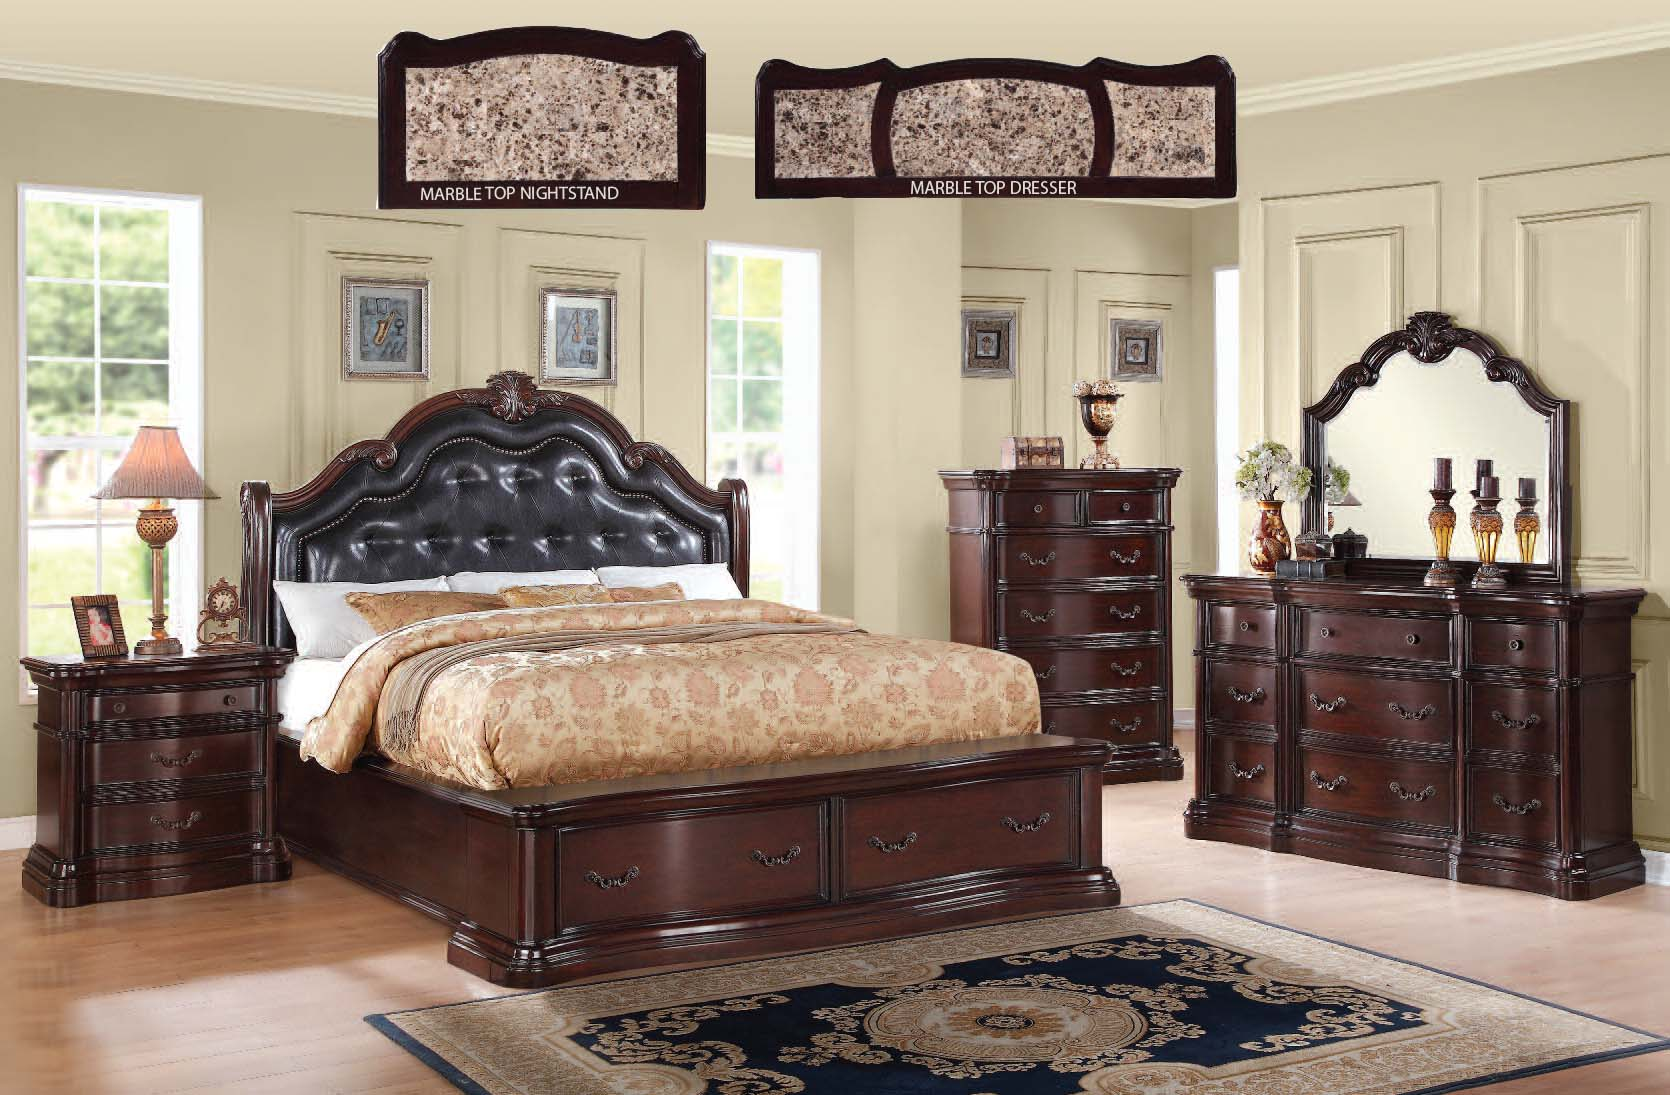 Acme furniture veradisia master bedroom set the classy home for Bedroom furniture set deals